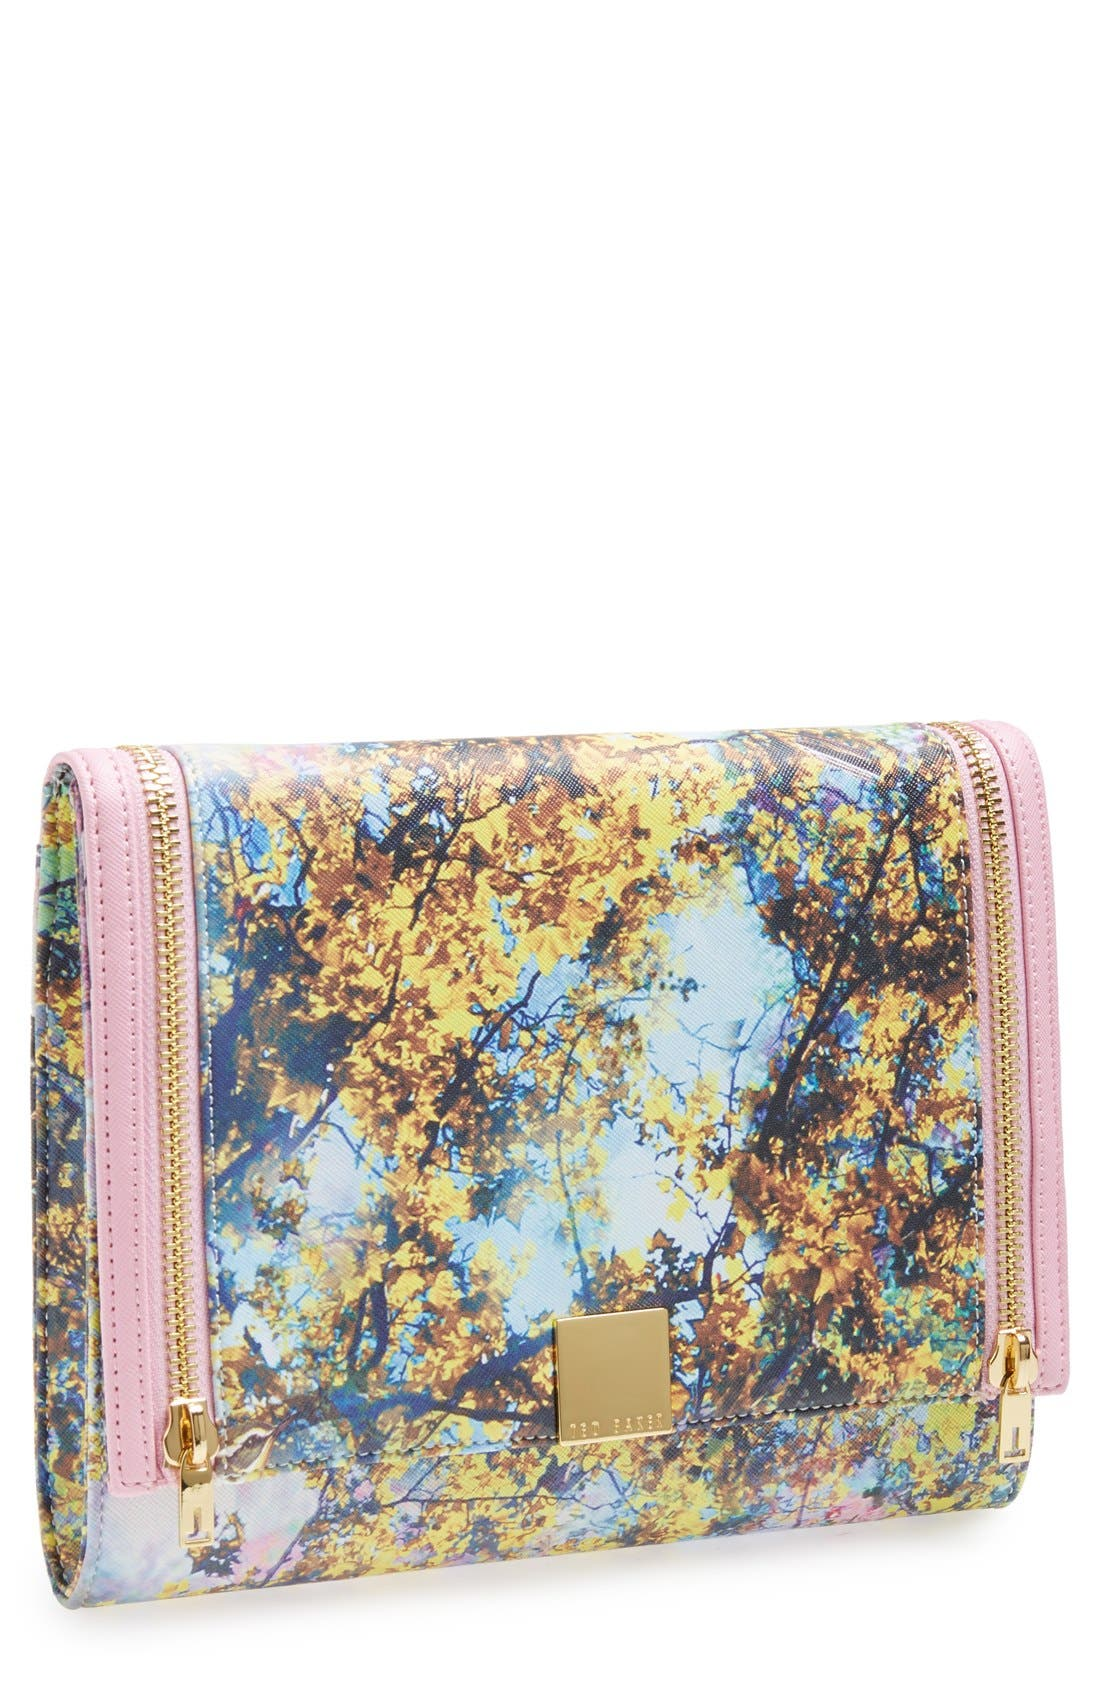 Main Image - Ted Baker London 'Pretty Trees' Print Flap Clutch